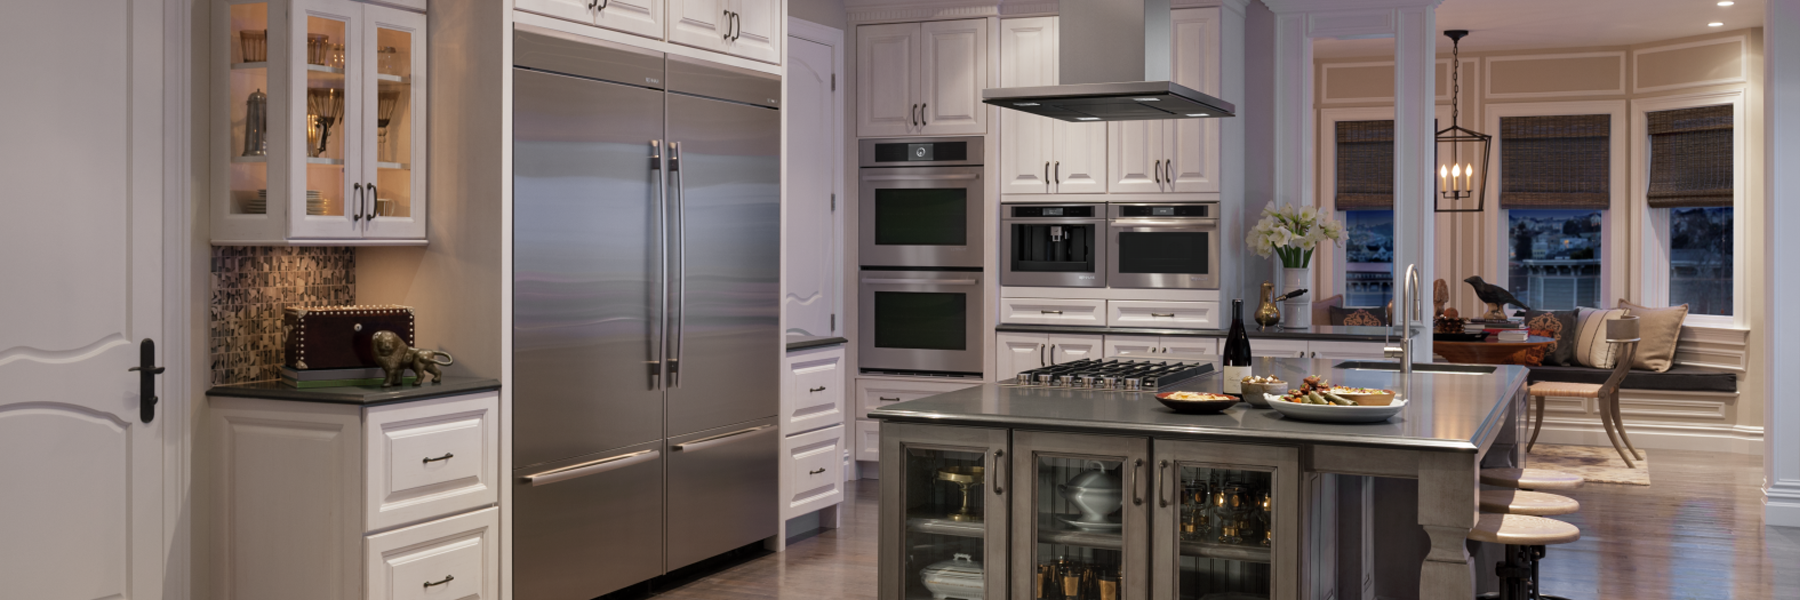 high-end stainless steel kitchen wide shot